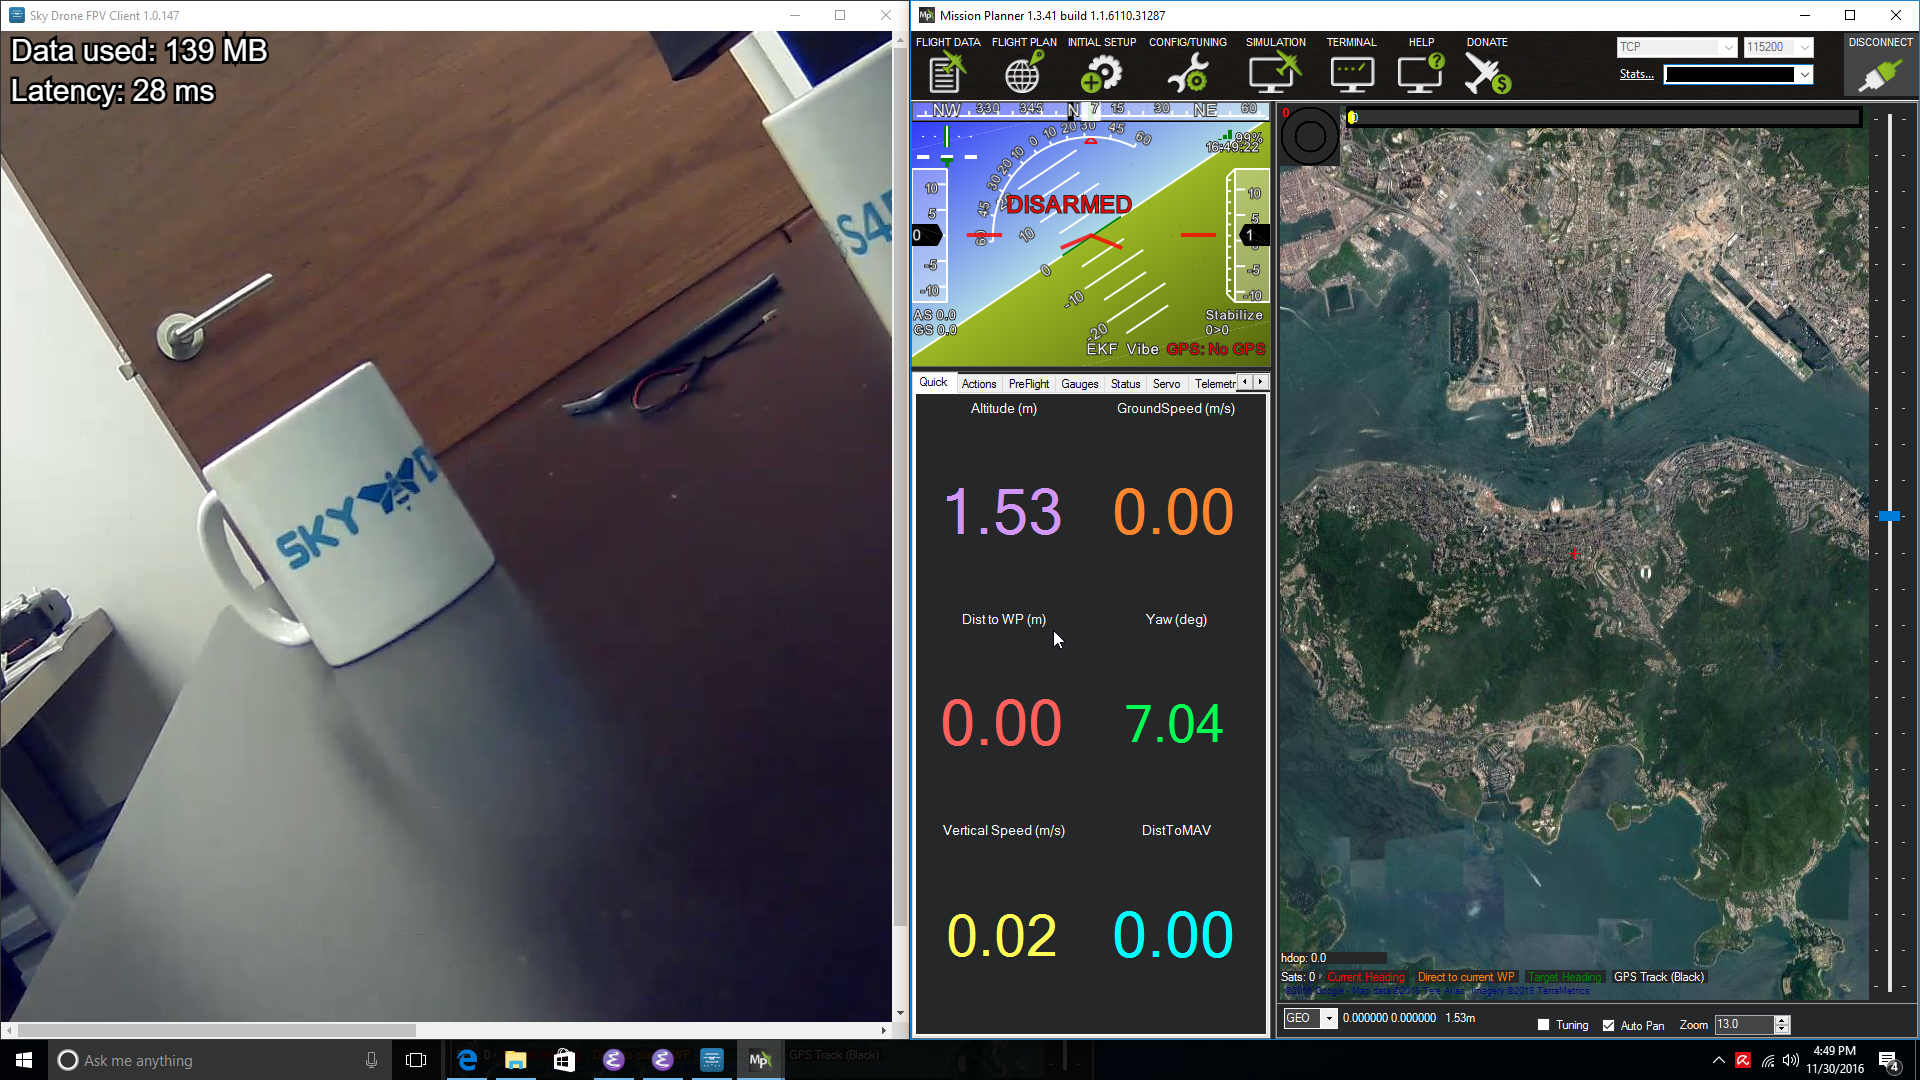 Using Sky Drone FPV with Mission Planner for full 4G/LTE